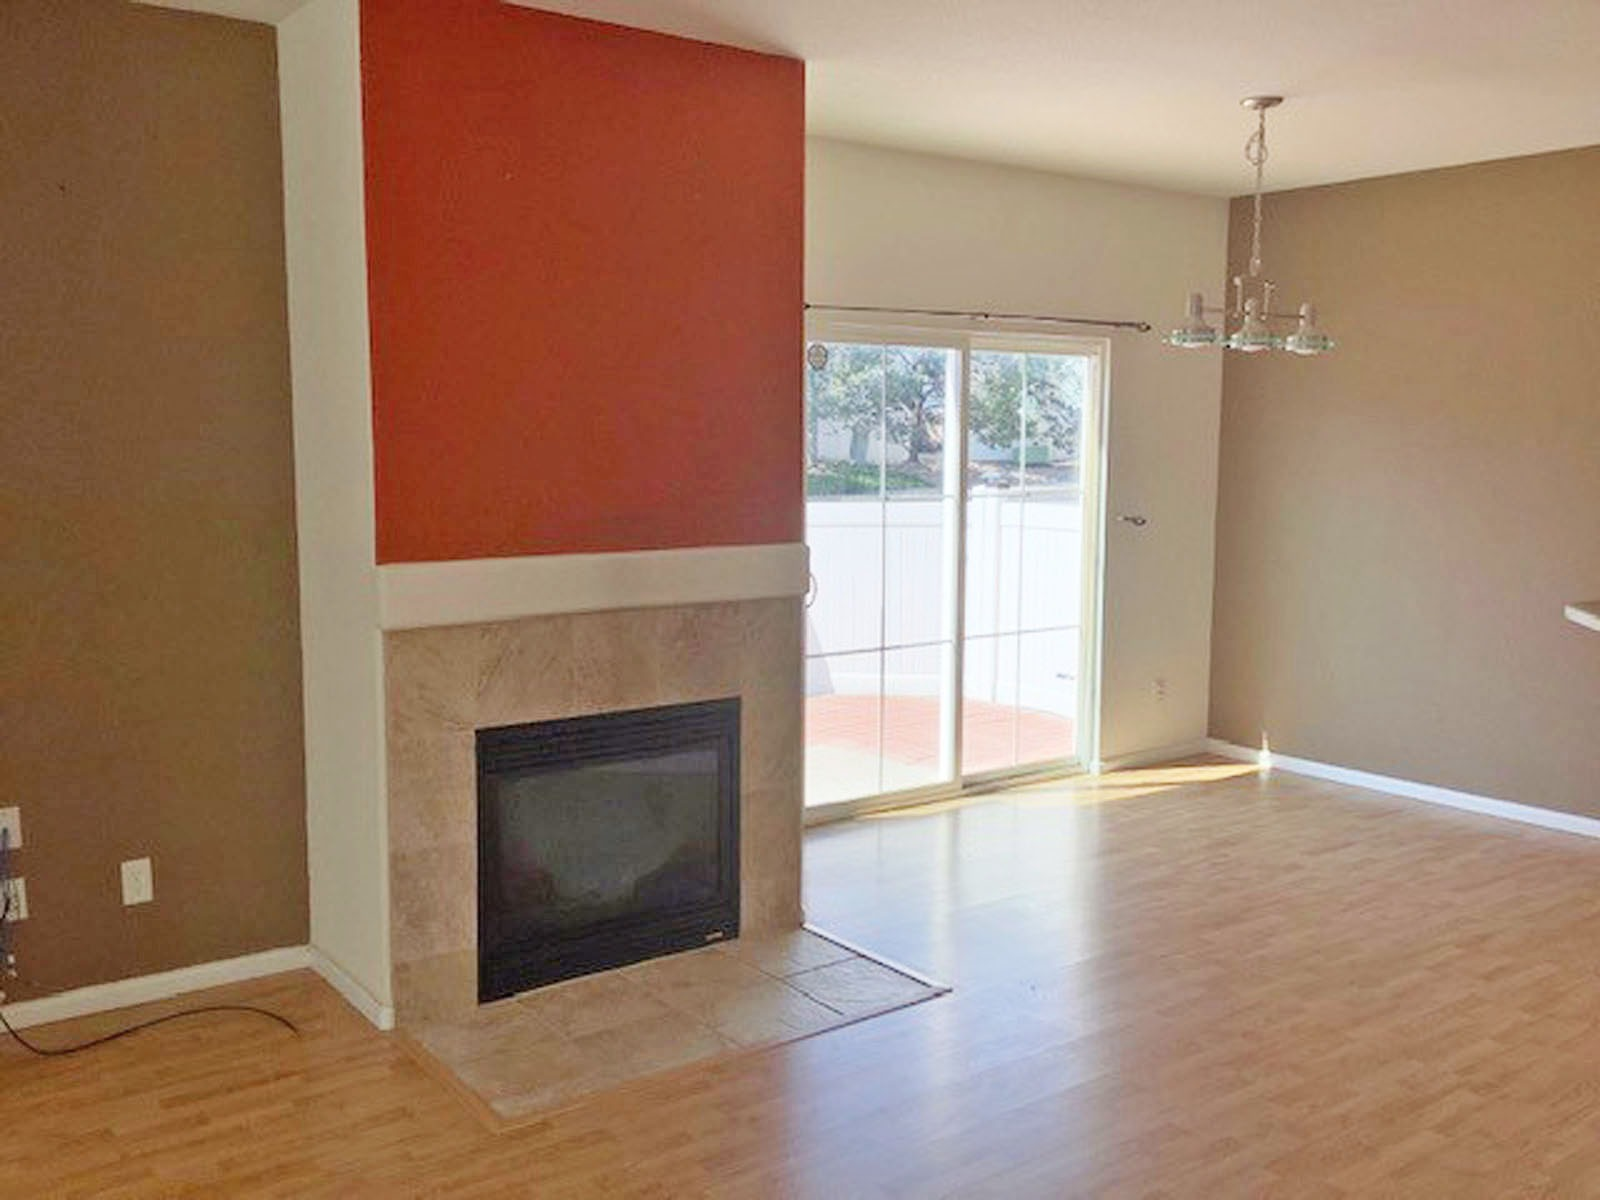 Gas Fireplace & Slider to Large Patio Area